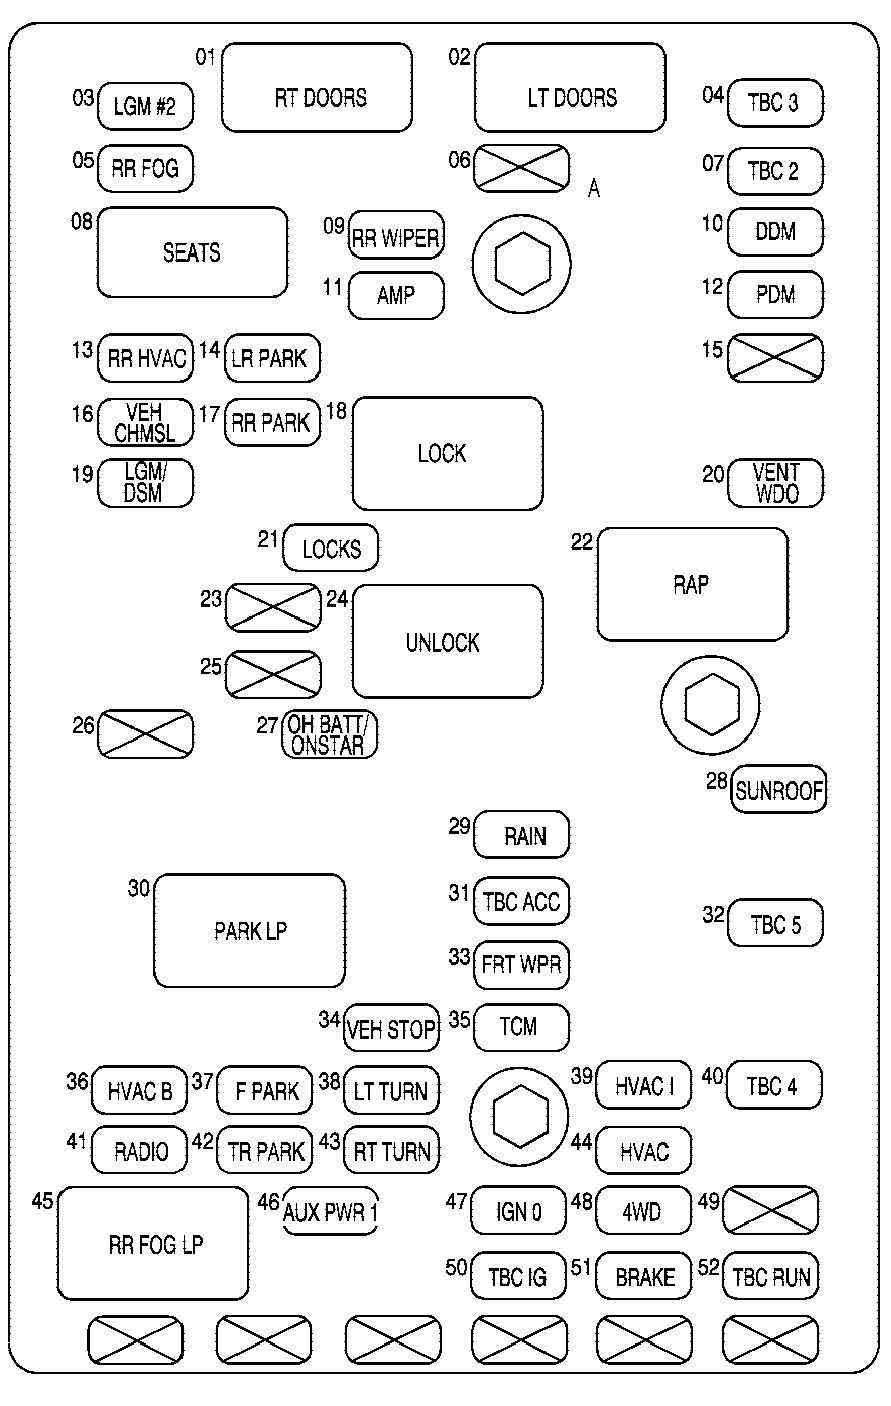 2006 Silverado Tbc Fuse Box Diagram : 35 Wiring Diagram